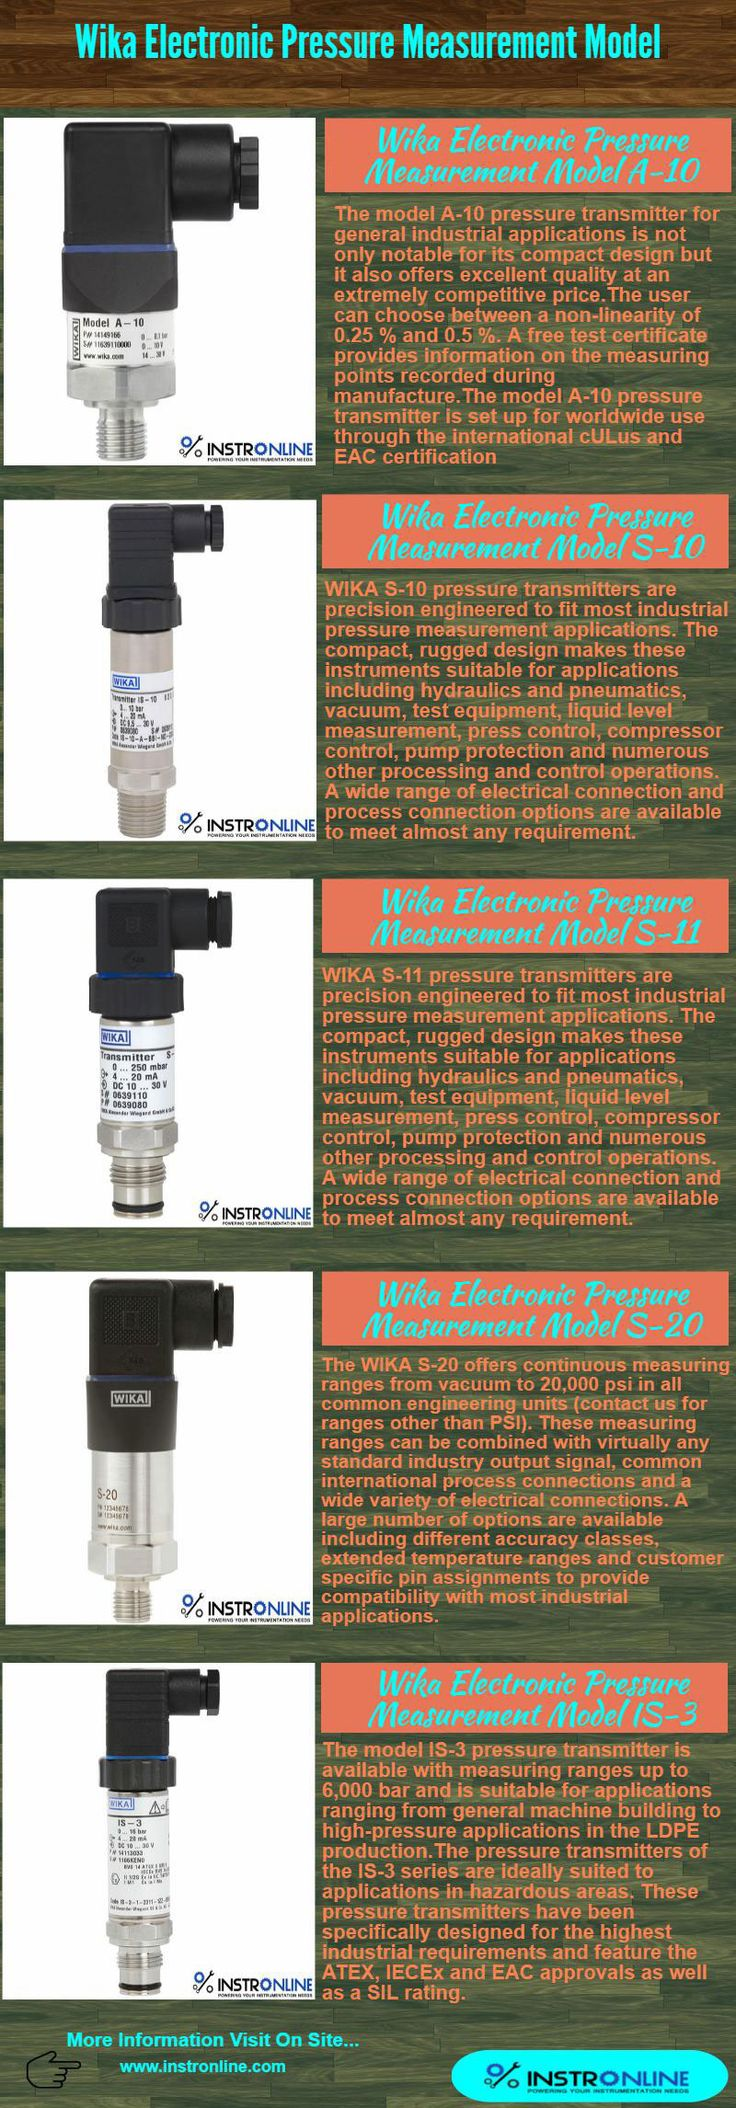 #WIKA_S_10_pressure_transmitters are precision engineered to fit most industrial pressure measurement applications.